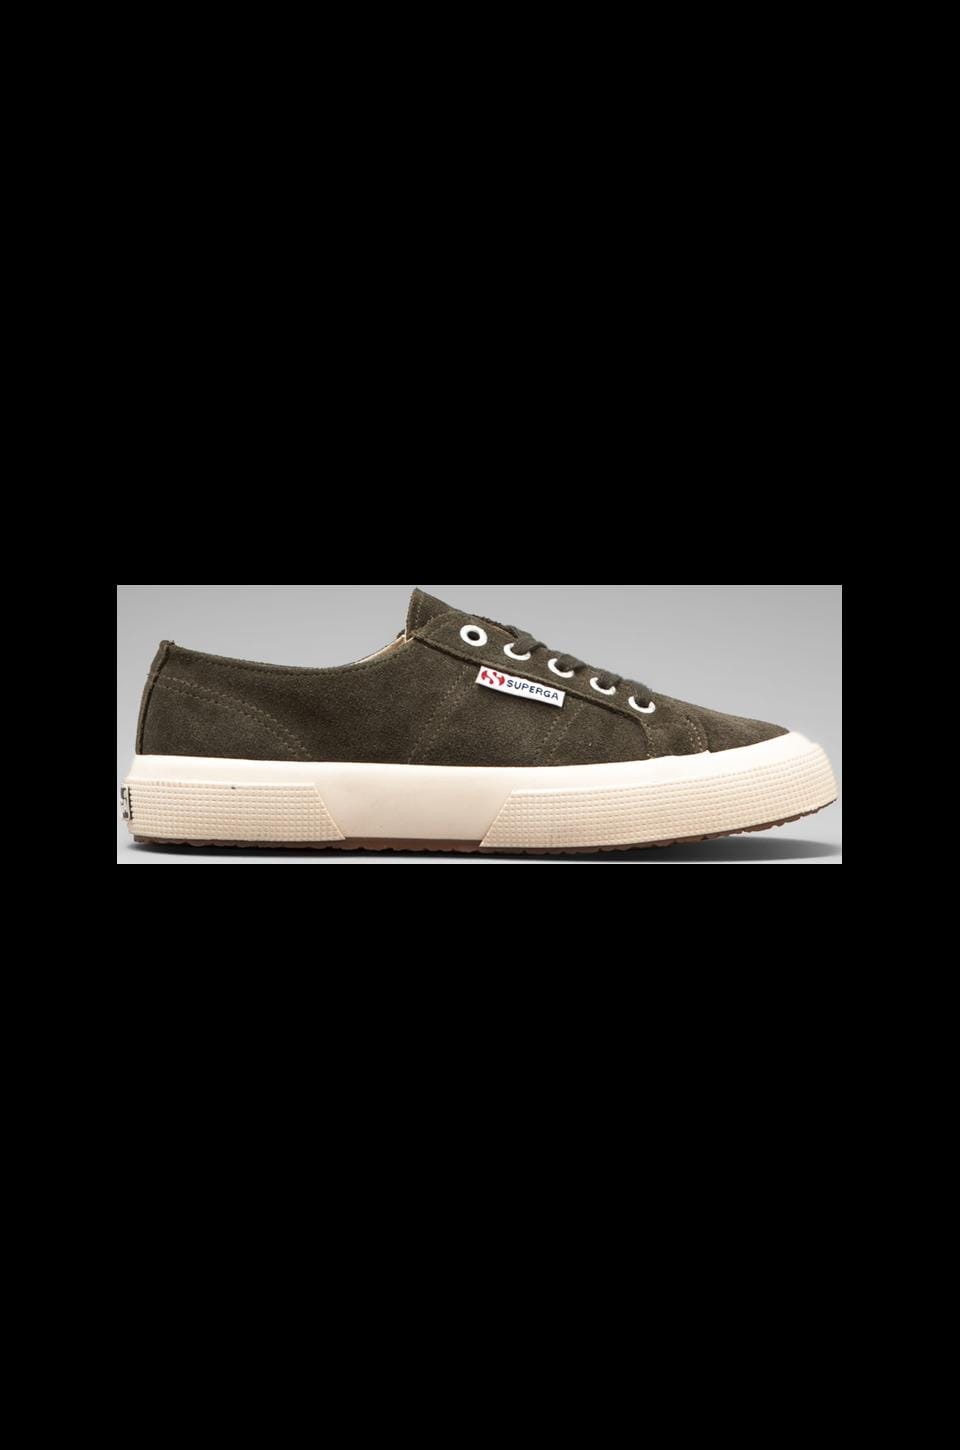 Superga 2750 Sueu Sneaker in Military Green